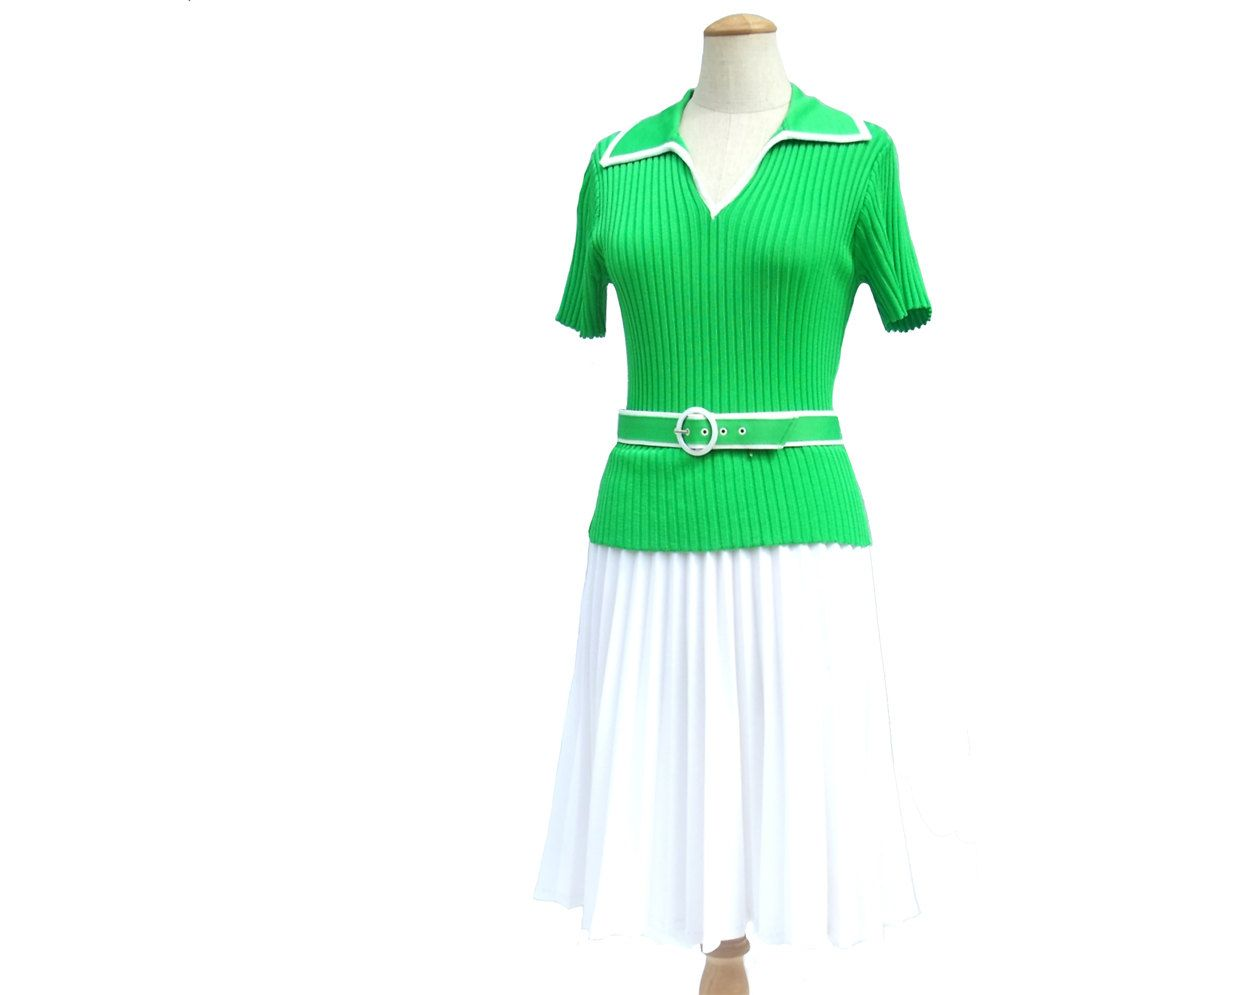 Green and white short dress  Vintage s Dress Green White Stretch Knit Pleat Belt Medium